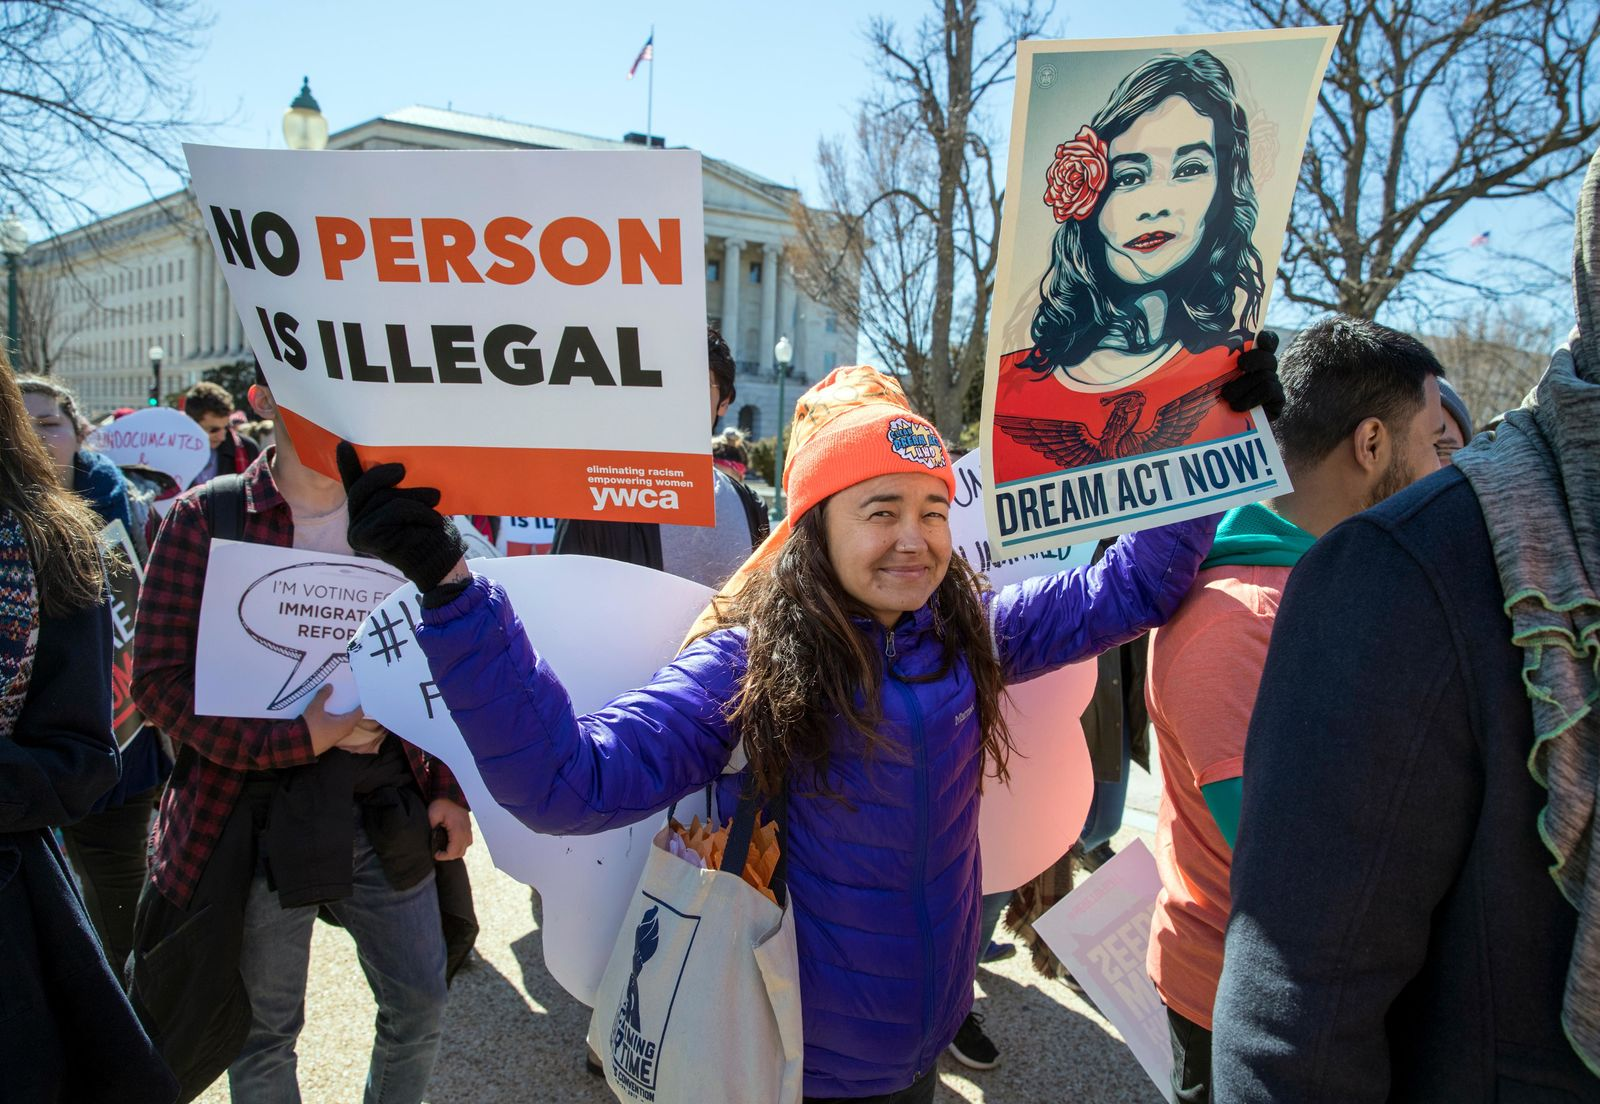 Deferred Action for Childhood Arrivals (DACA) recipients and other young immigrants march with supporters as they arrive at the Capitol in Washington, Monday, March 5, 2018. (AP Photo/J. Scott Applewhite)